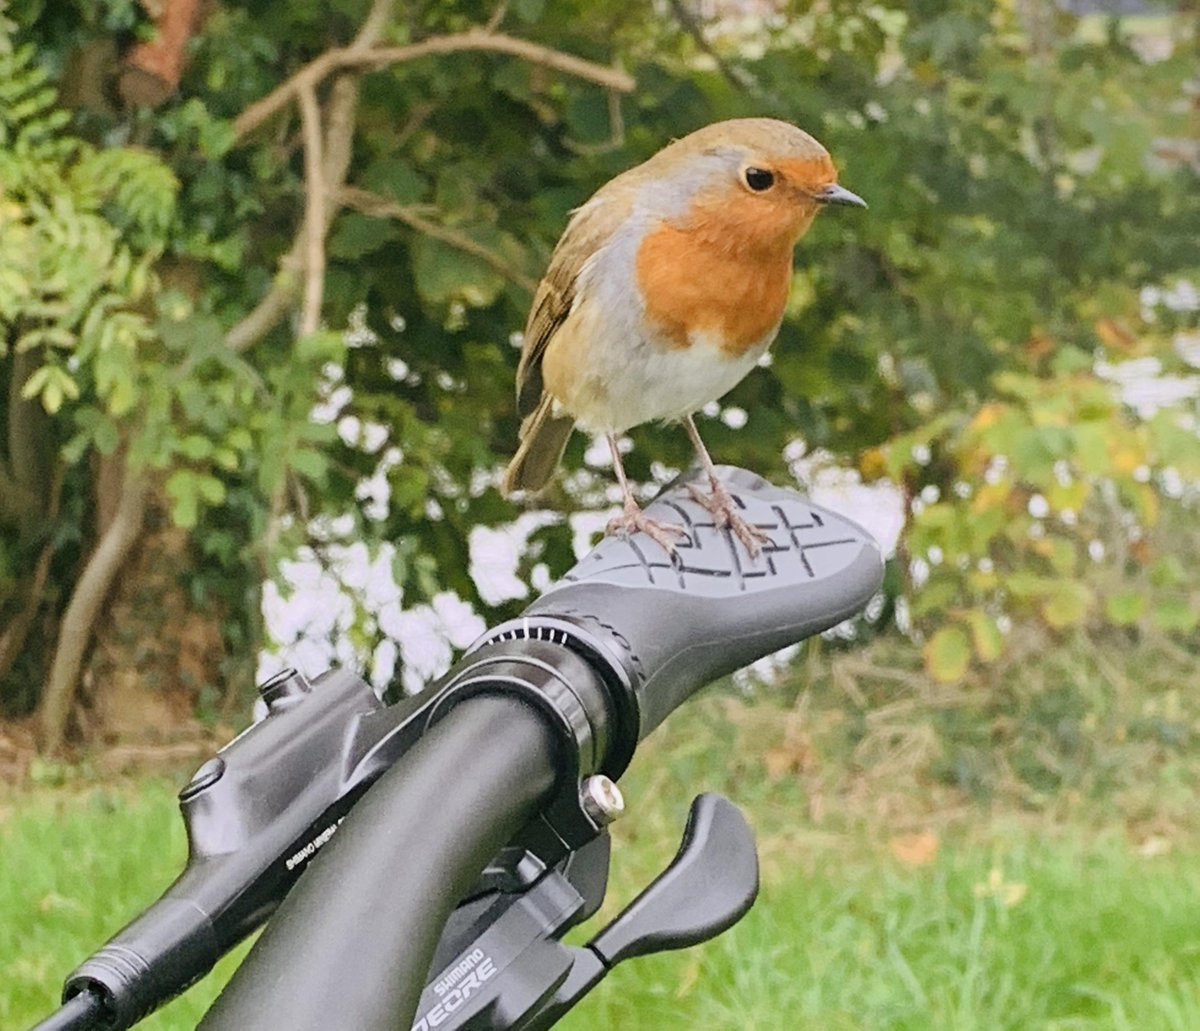 Todays Photo of the Day is of a Robin hitching a ride on Adam Miless bike#BBCCountryfileMagPOTD